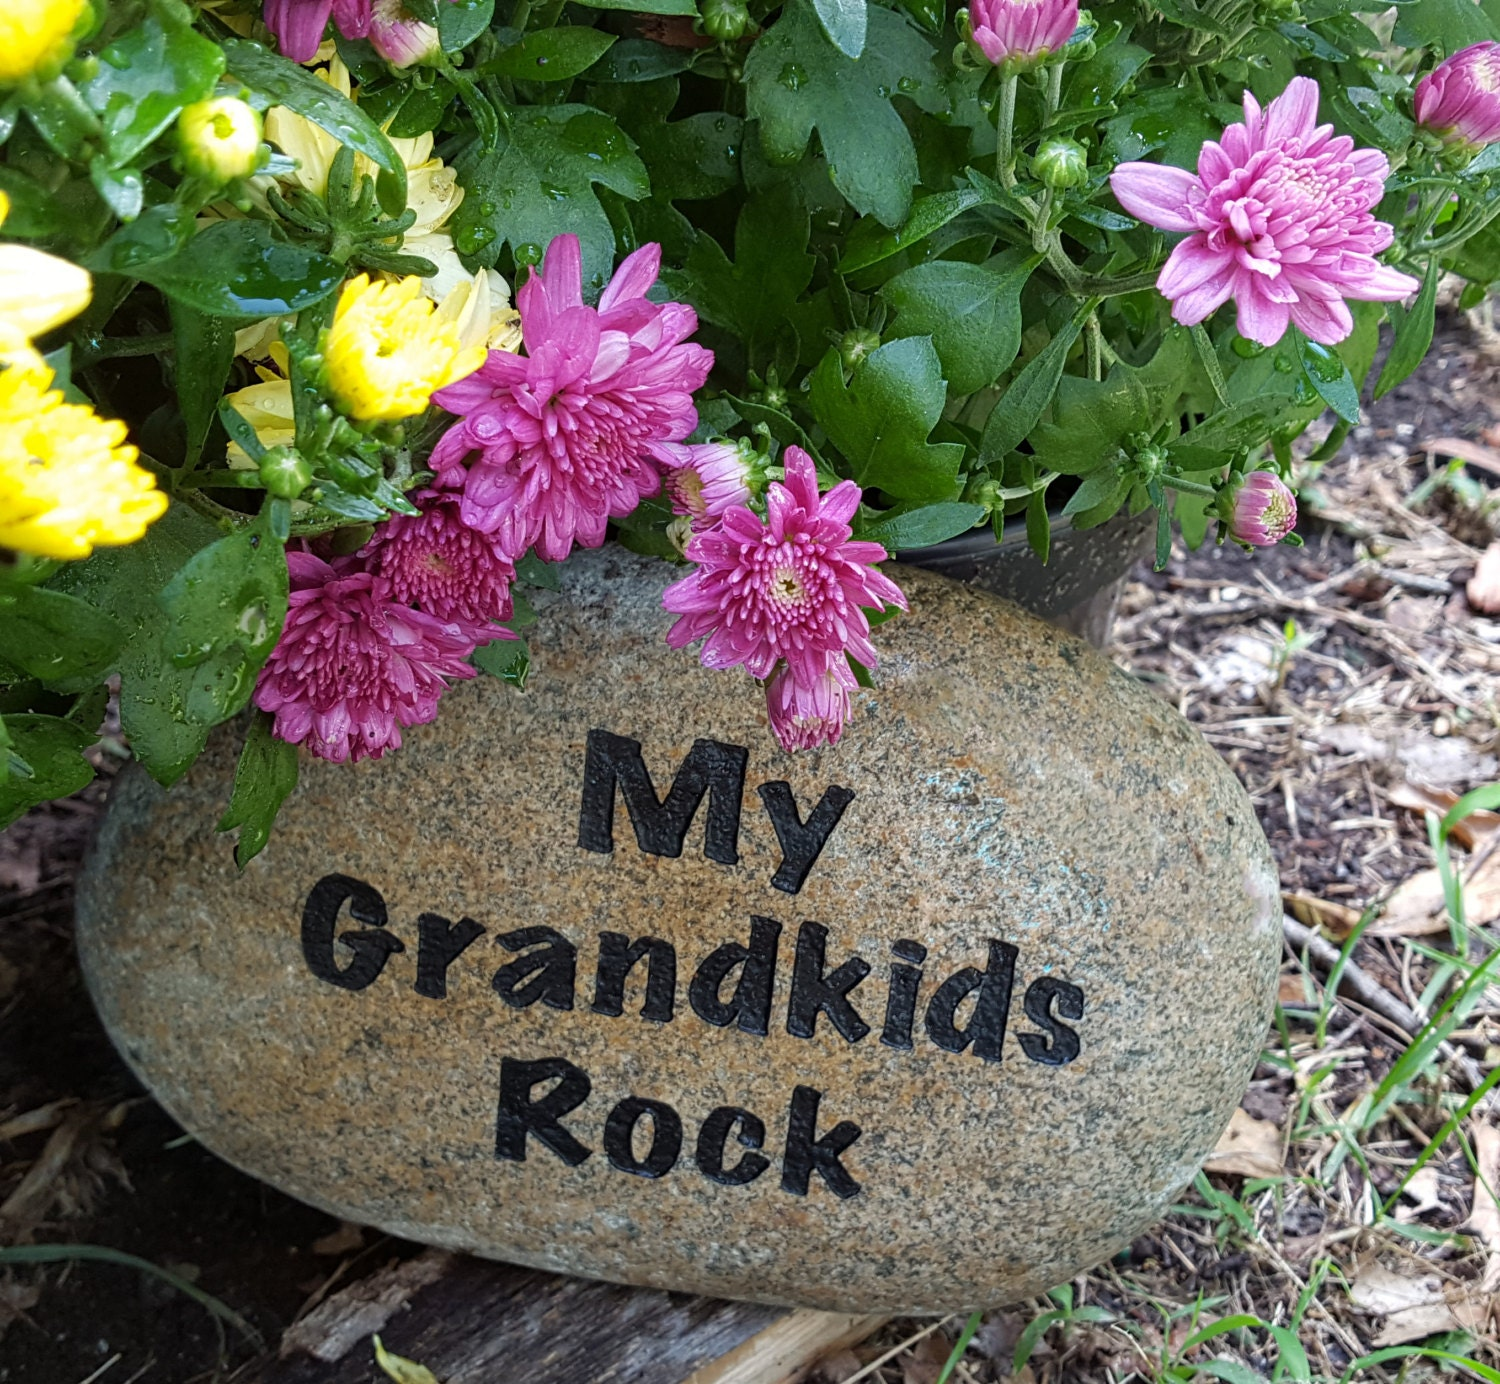 Landscaping Rocks Names : Mother s day my grandkids rock name rocks for garden